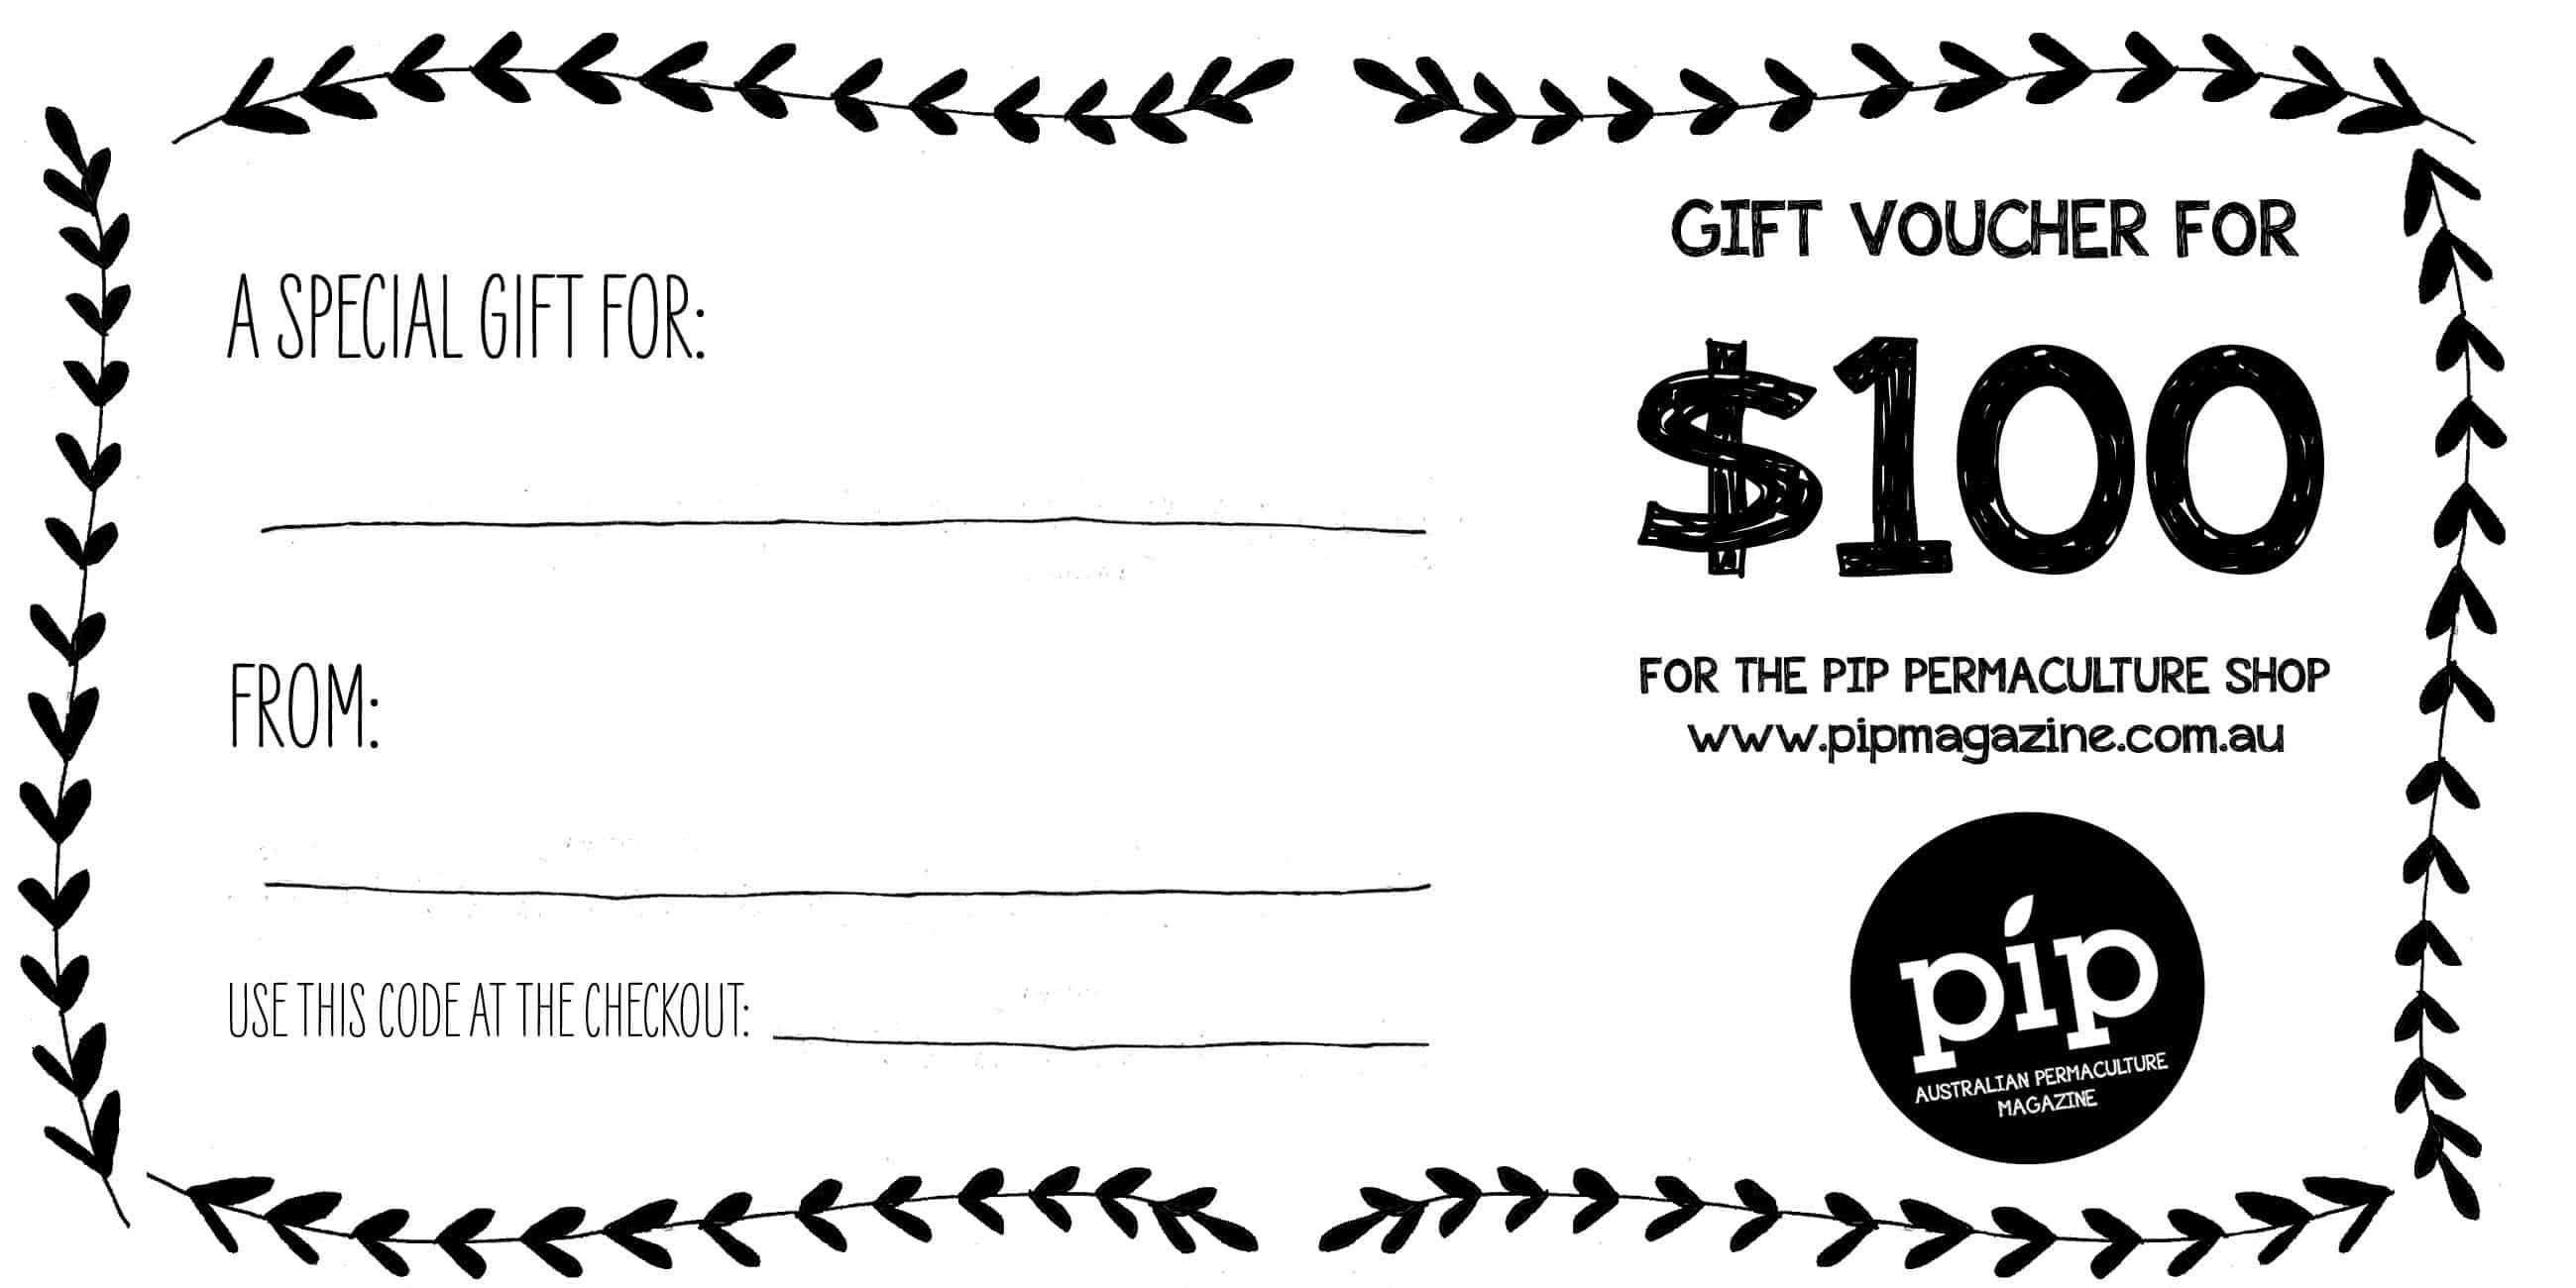 how to send gift vouchers to australia